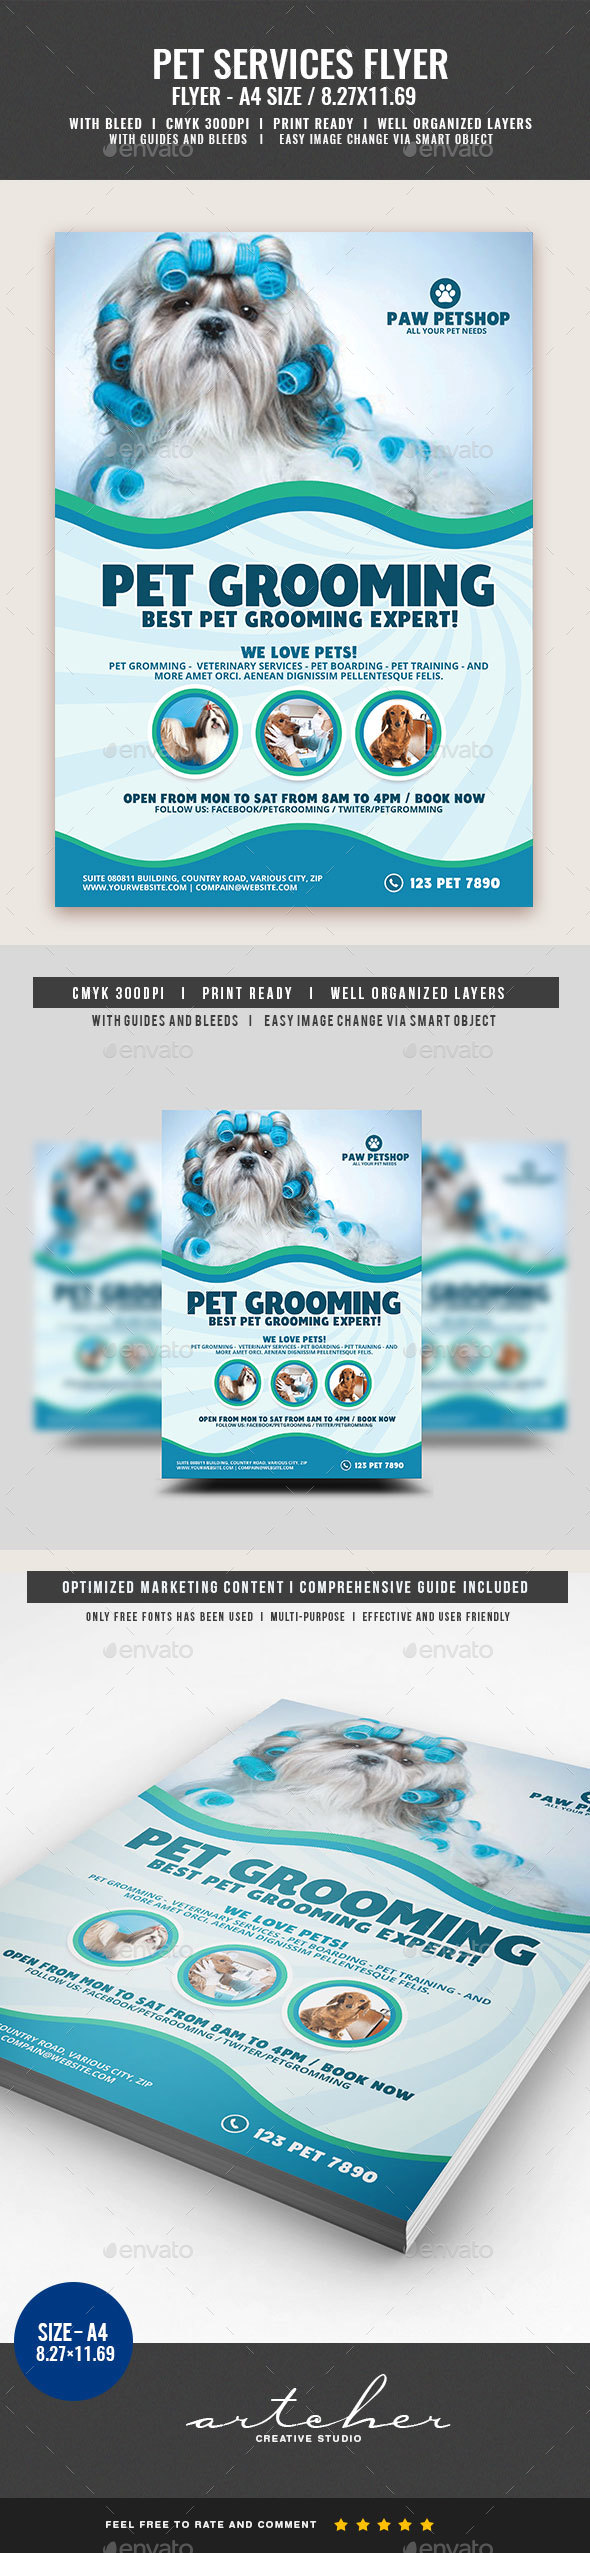 Pet Grooming Services - Commerce Flyers